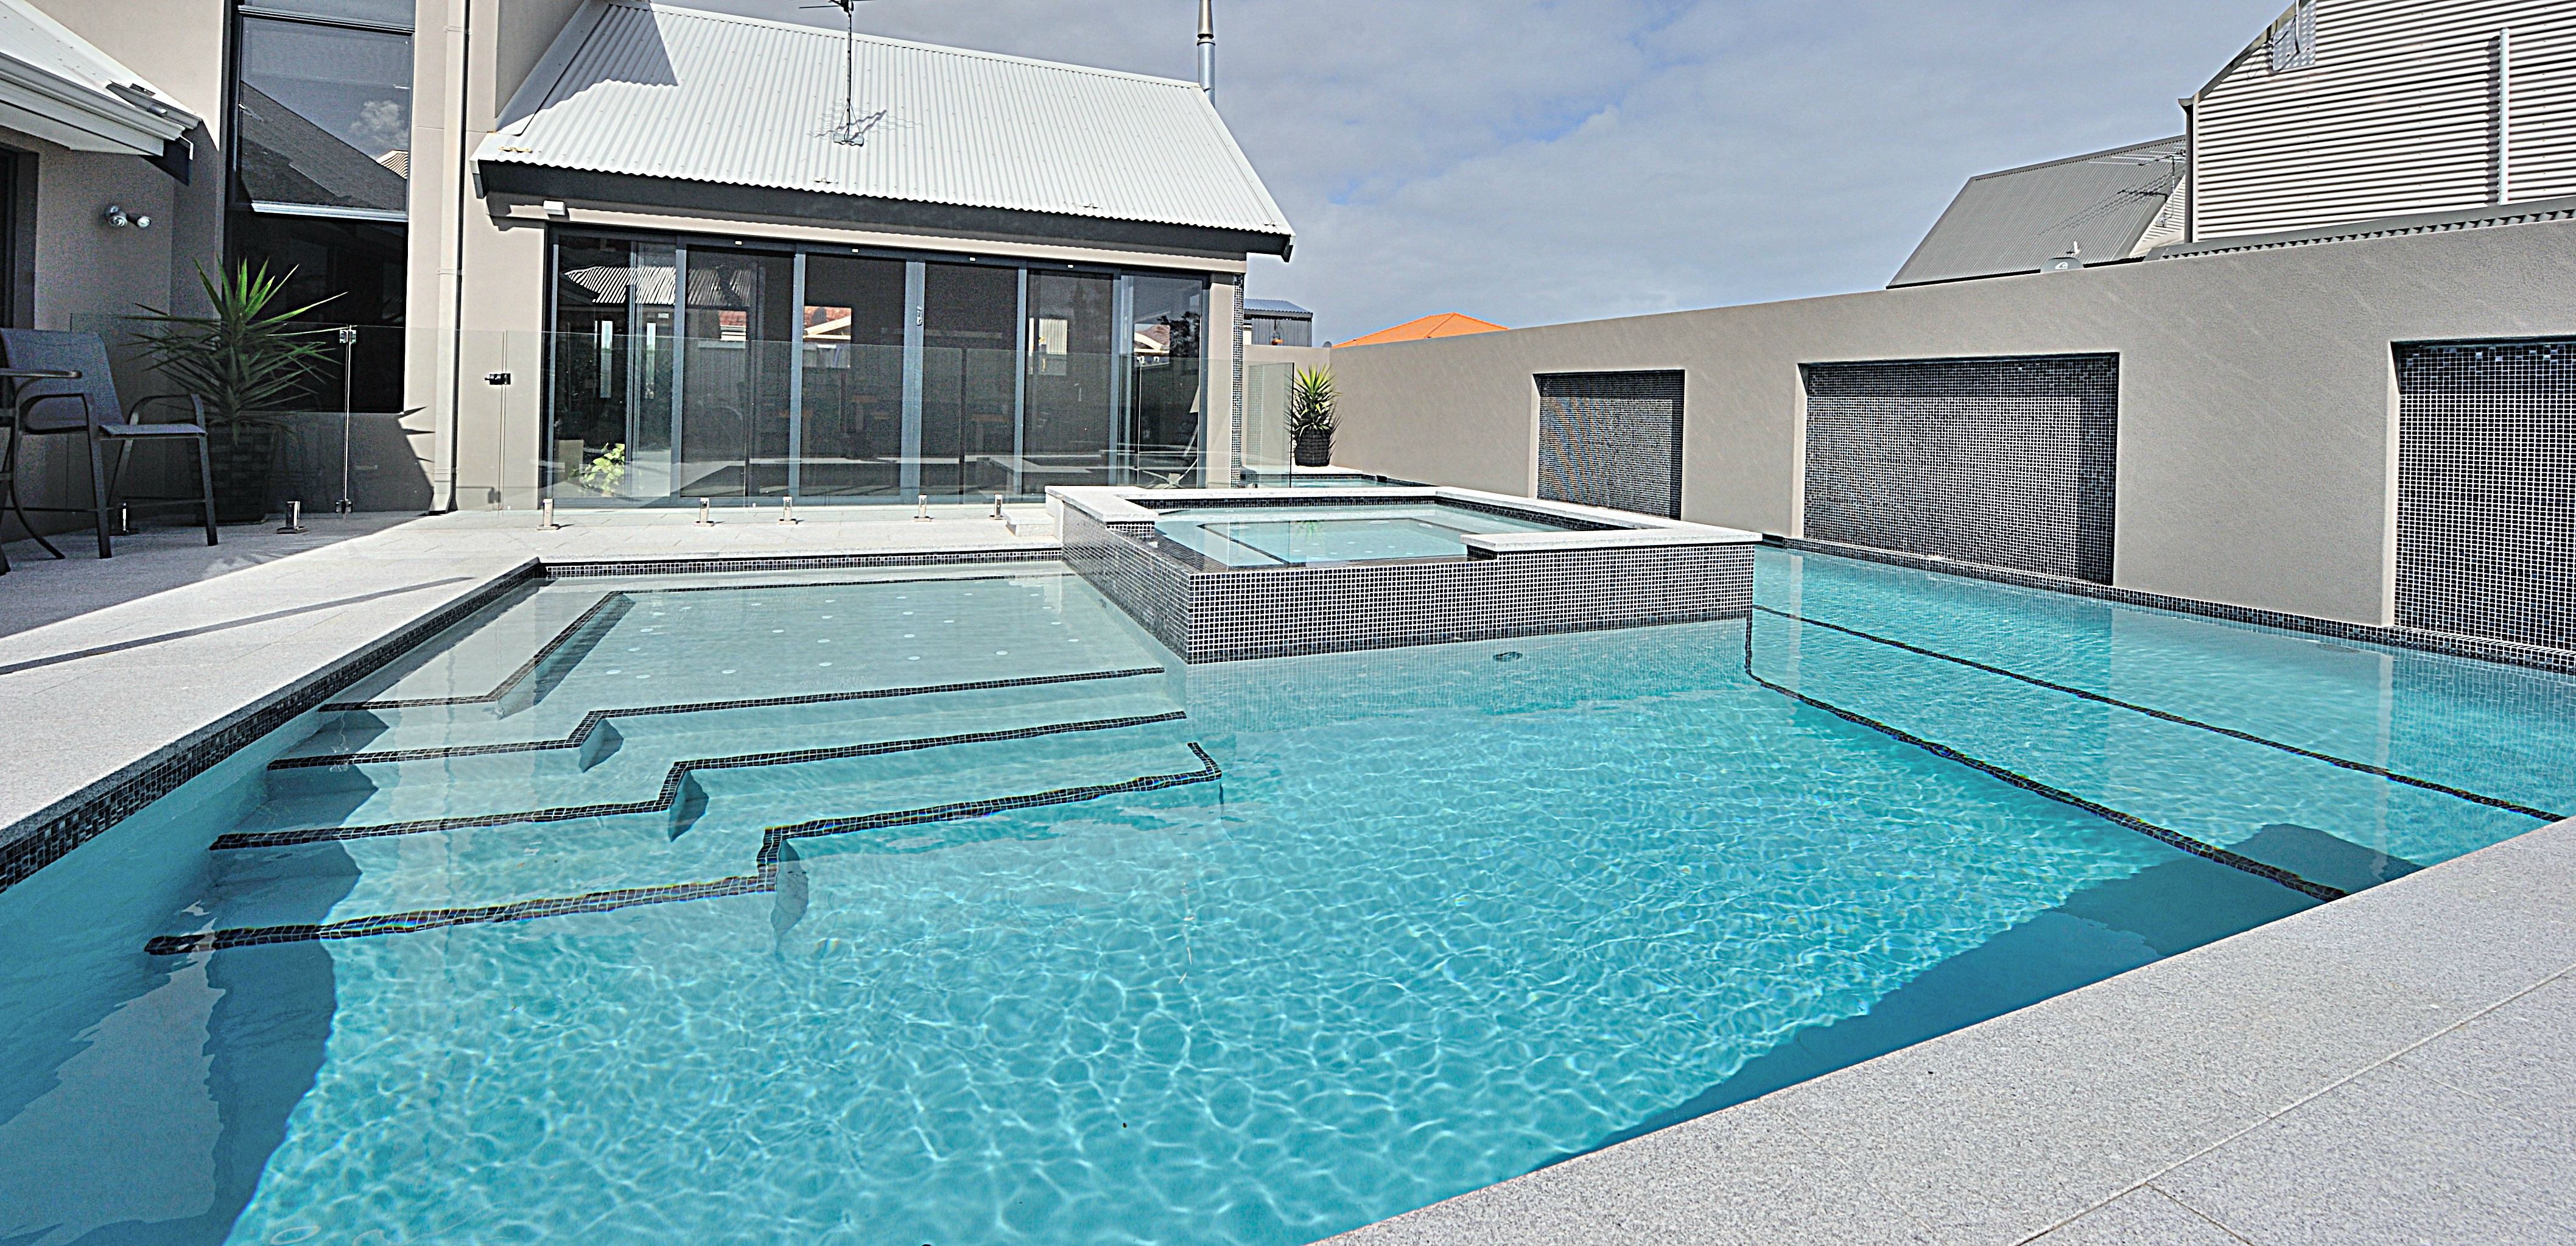 Piscinas Con Jardin Gallery- Tropical Pools Perth | Best Swimming Pool Designs